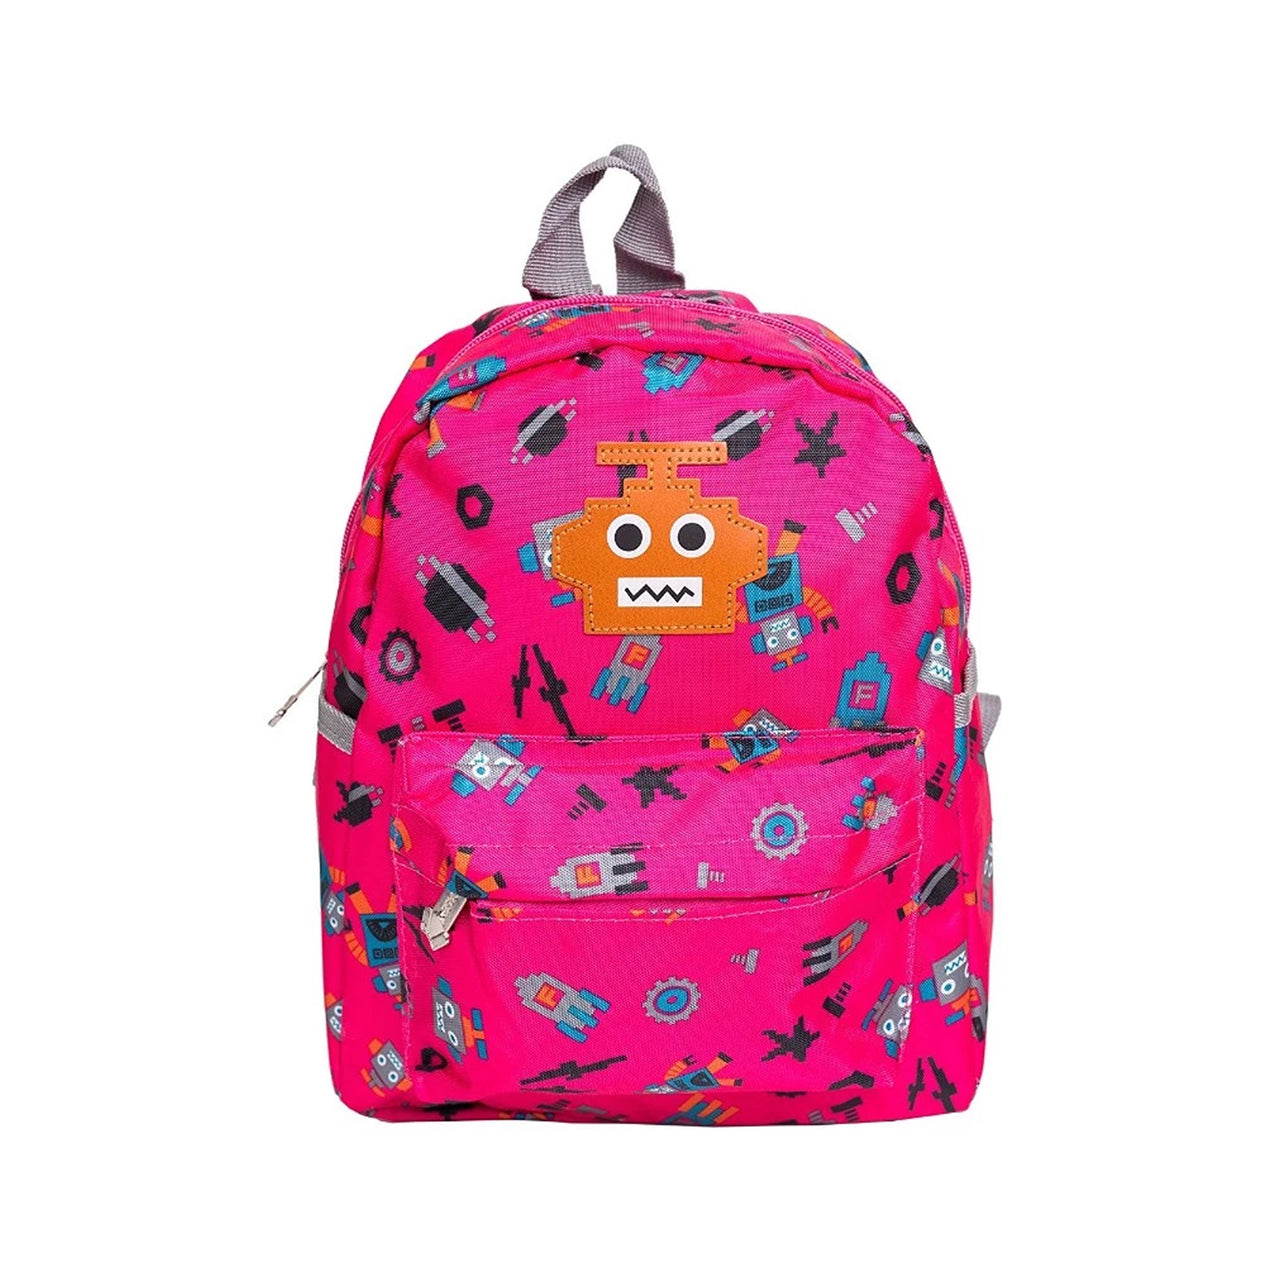 Robots Backpack - Pink